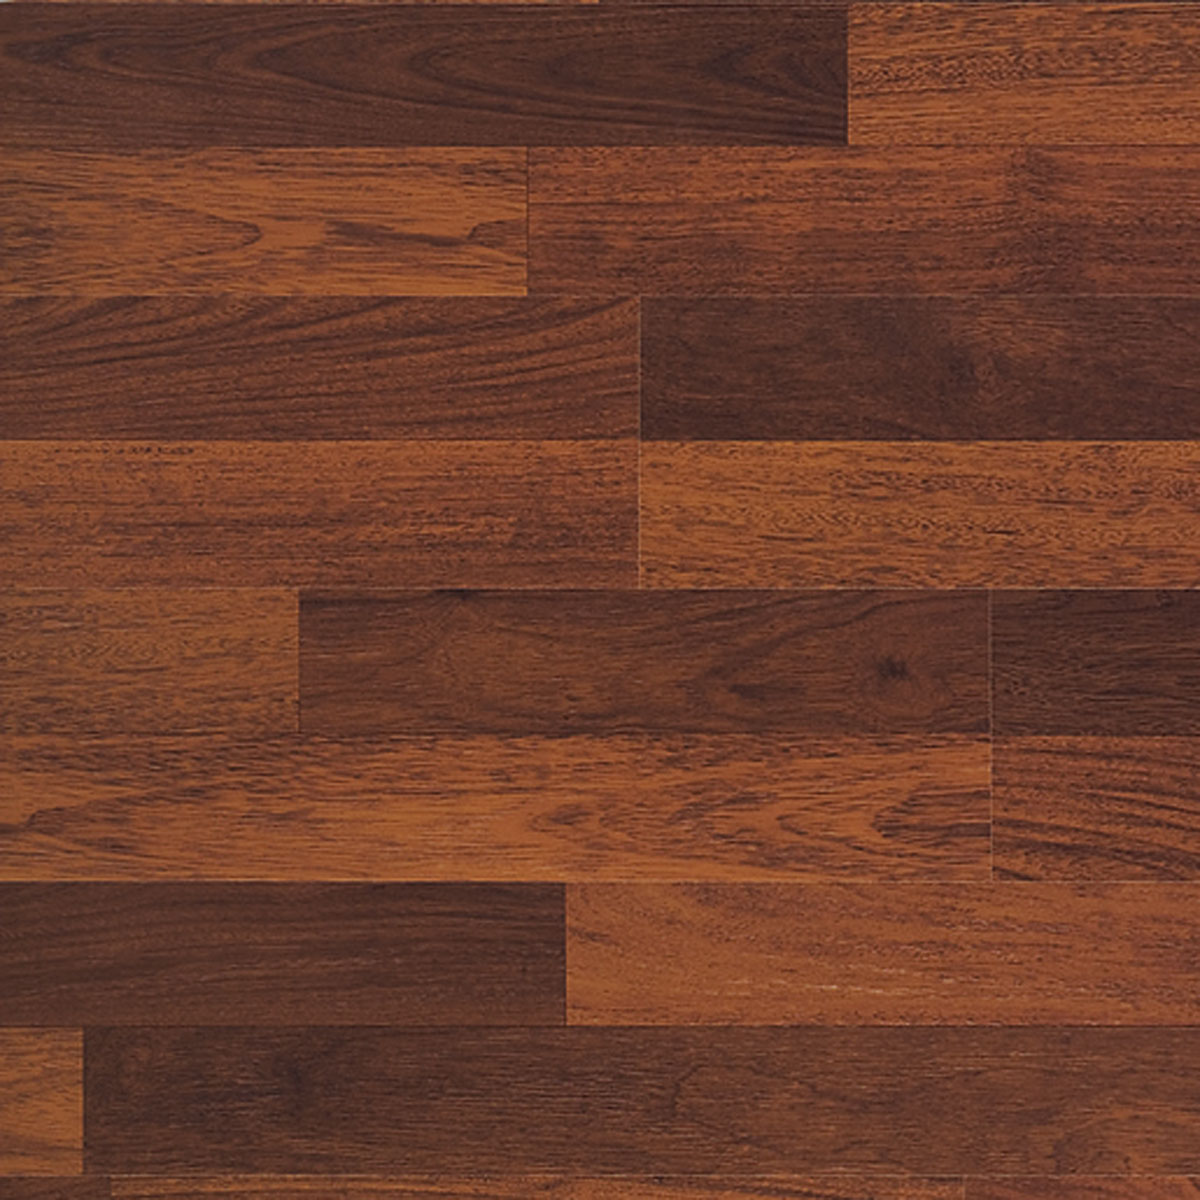 laminated wooden flooring photo - 2 MHTZVAO